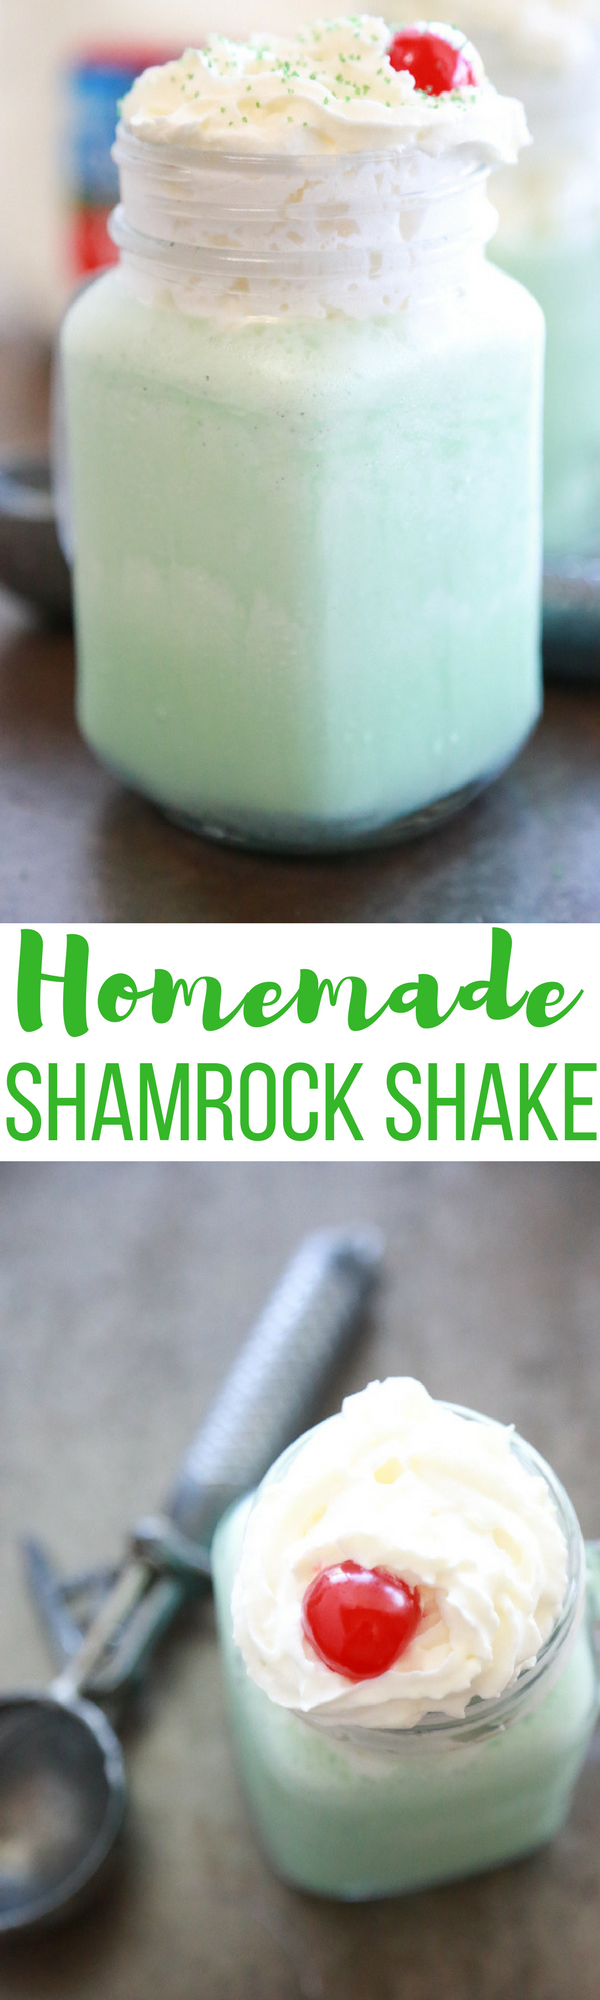 Love McDonald's Shamrock Shake? Try this cheaper Homemade Shamrock Shake that you can make right in your own kitchen.